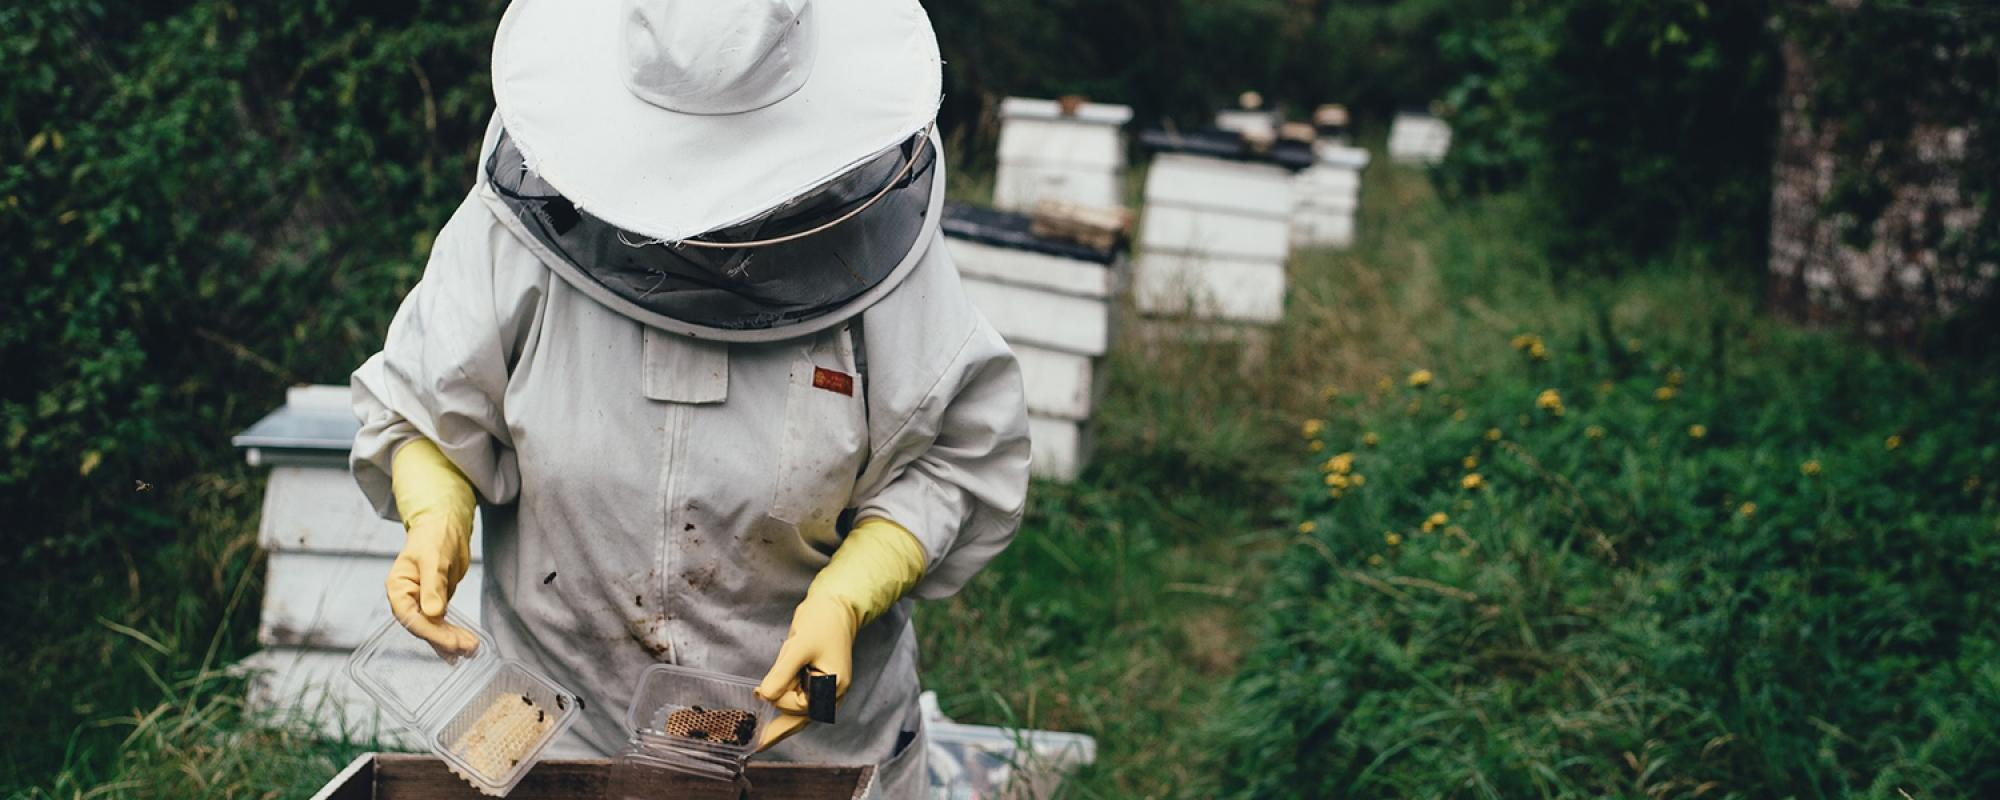 Bee keeper working with bees